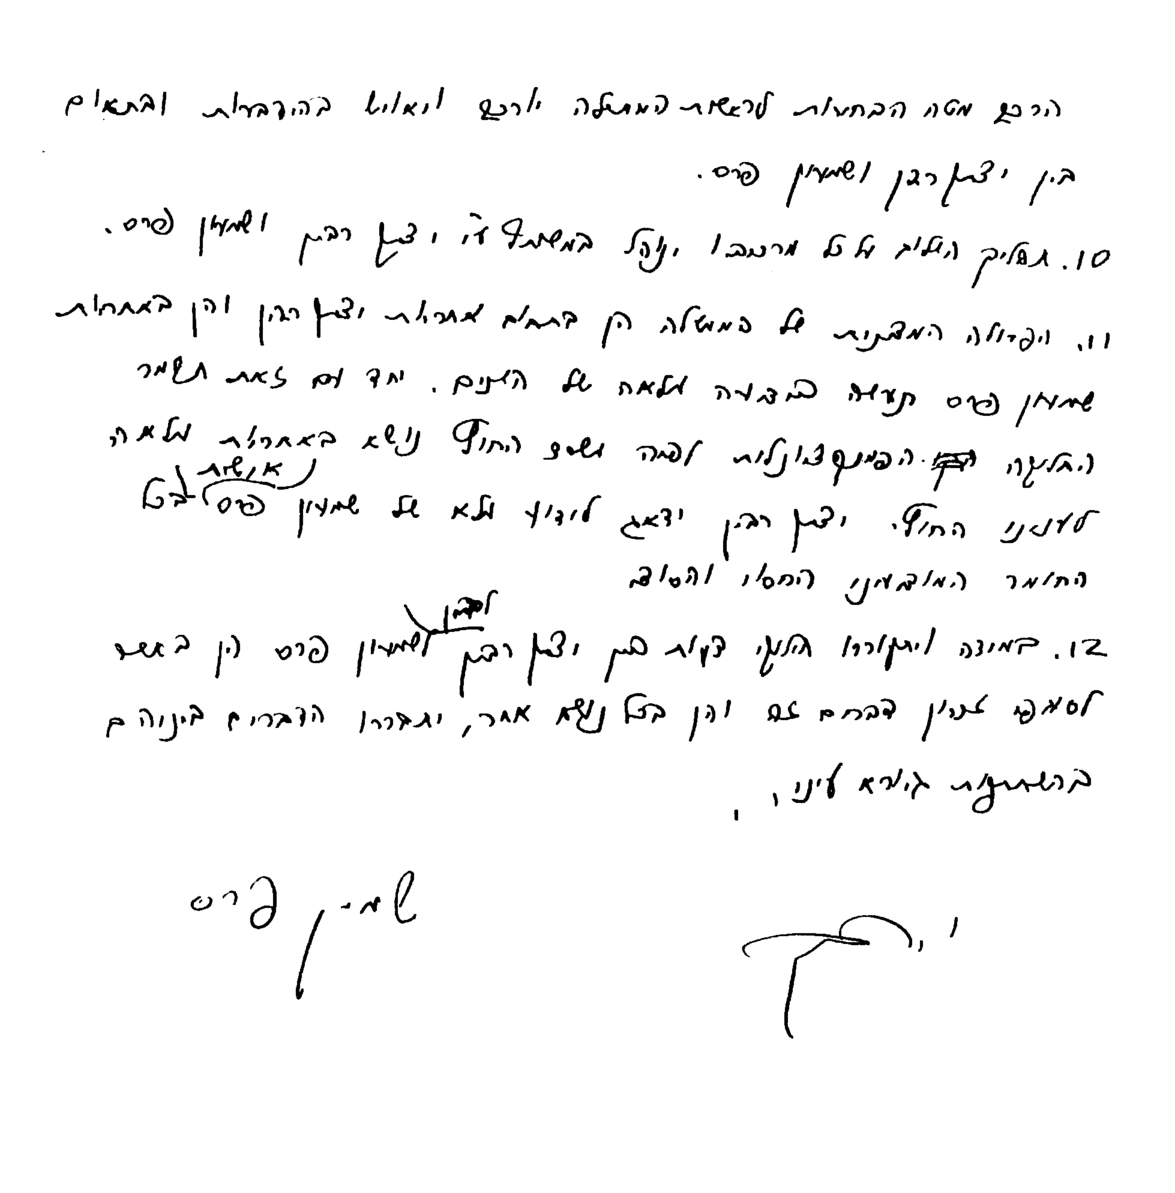 The letter, with Peres and Rabin's signatures